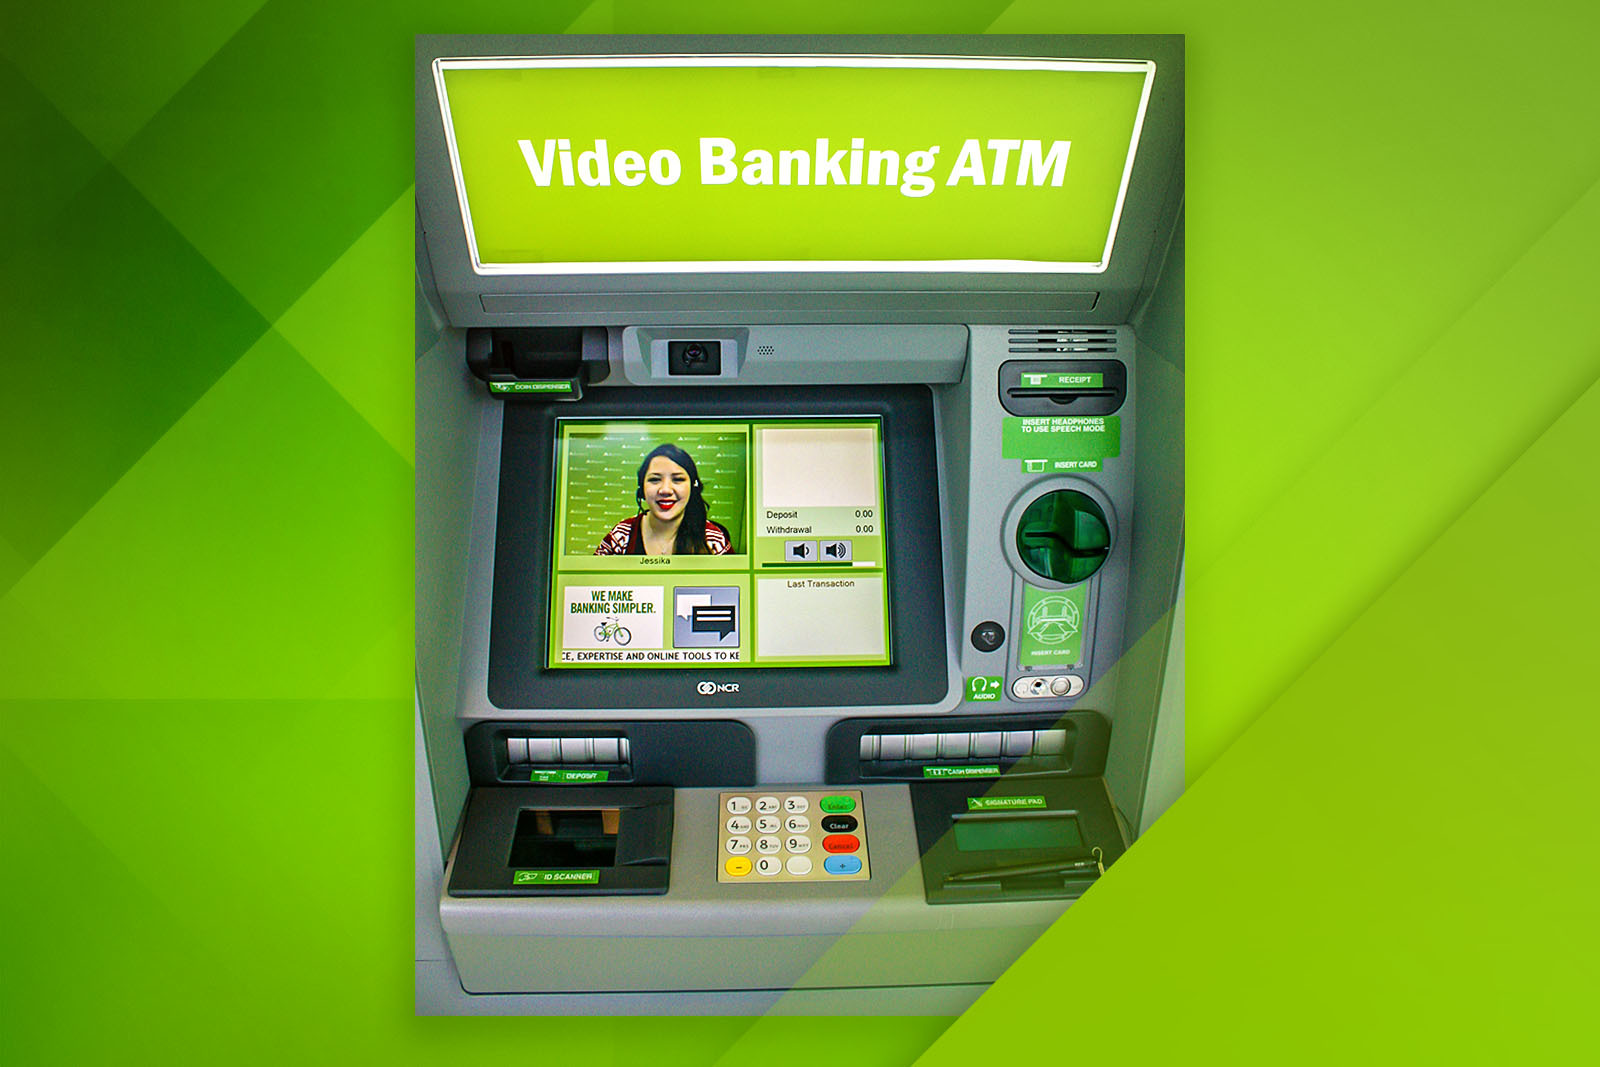 Regions' Video Banking ATMs connect customers via live, two-way video for personalized service during an expanded set of hours. The renovated West Tampa-Hillsborough location includes a walk-up Video Banking ATM in addition to drive-up DepositSmart ATMs.